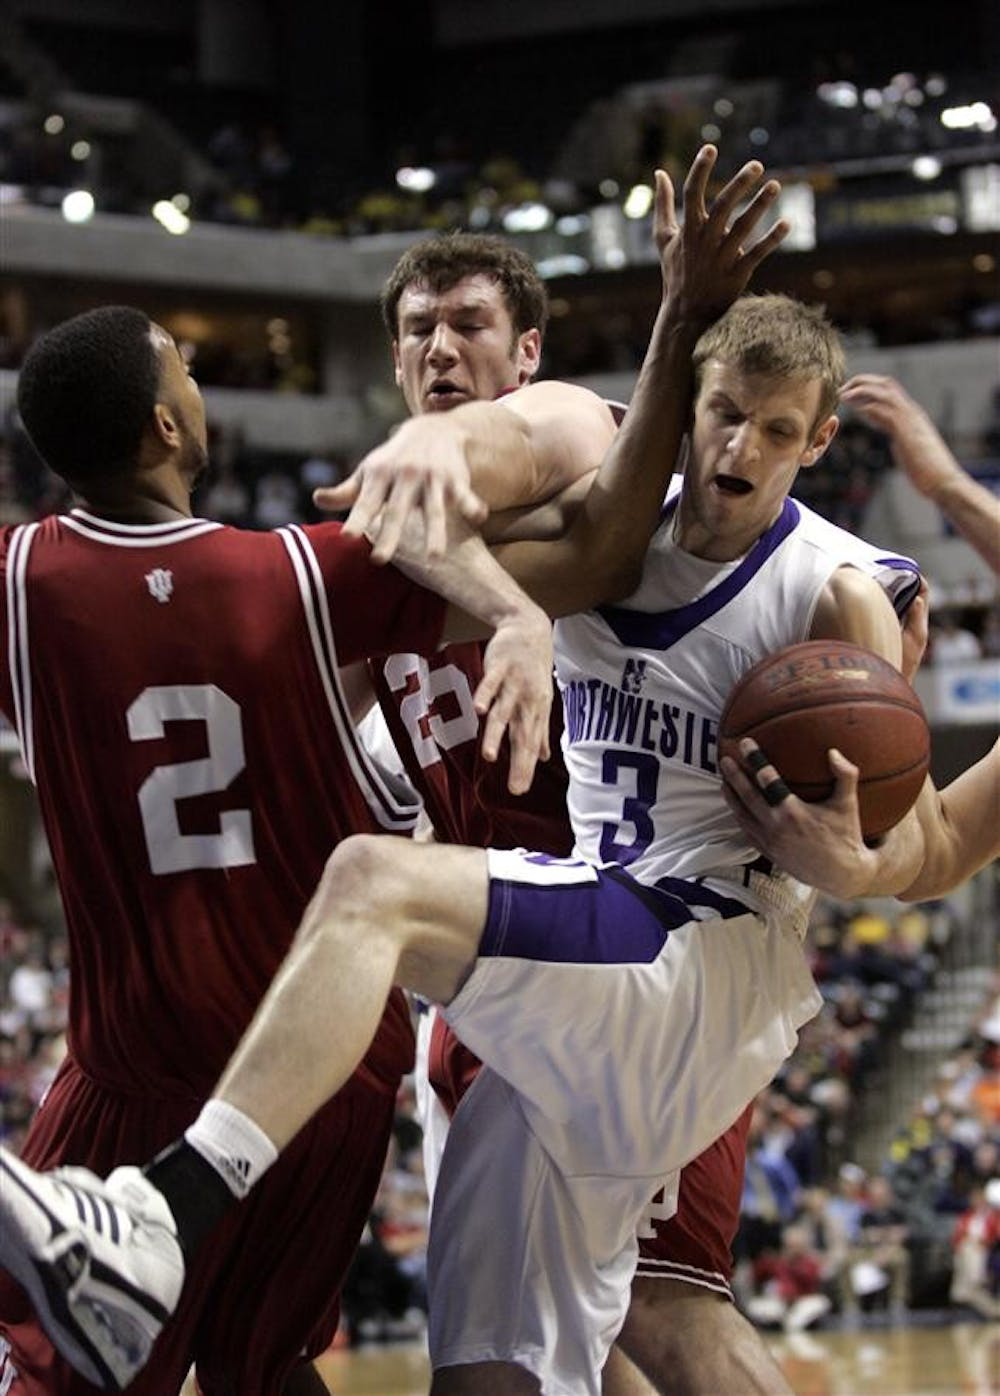 The Hoosiers attempt to steal the ball from Northwestern's Mike Capocci Thursday night during the Big Ten Tournament at Conseco Fieldhouse in Indianapolis.